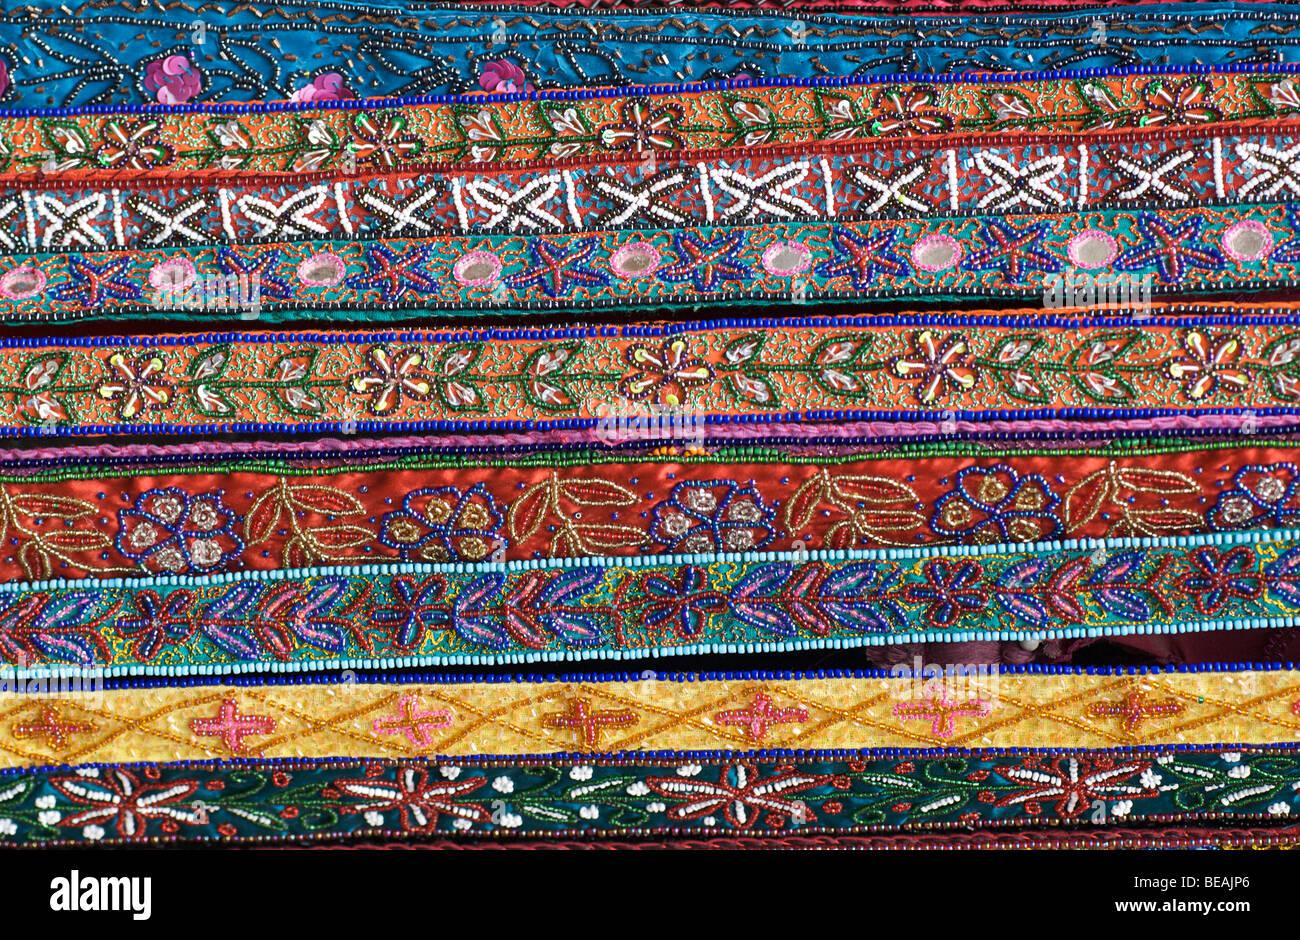 Beadwork decoarted textile ribbons on a market stall selling ethnic souvenirs, Katmandhu, Nepal - Stock Image